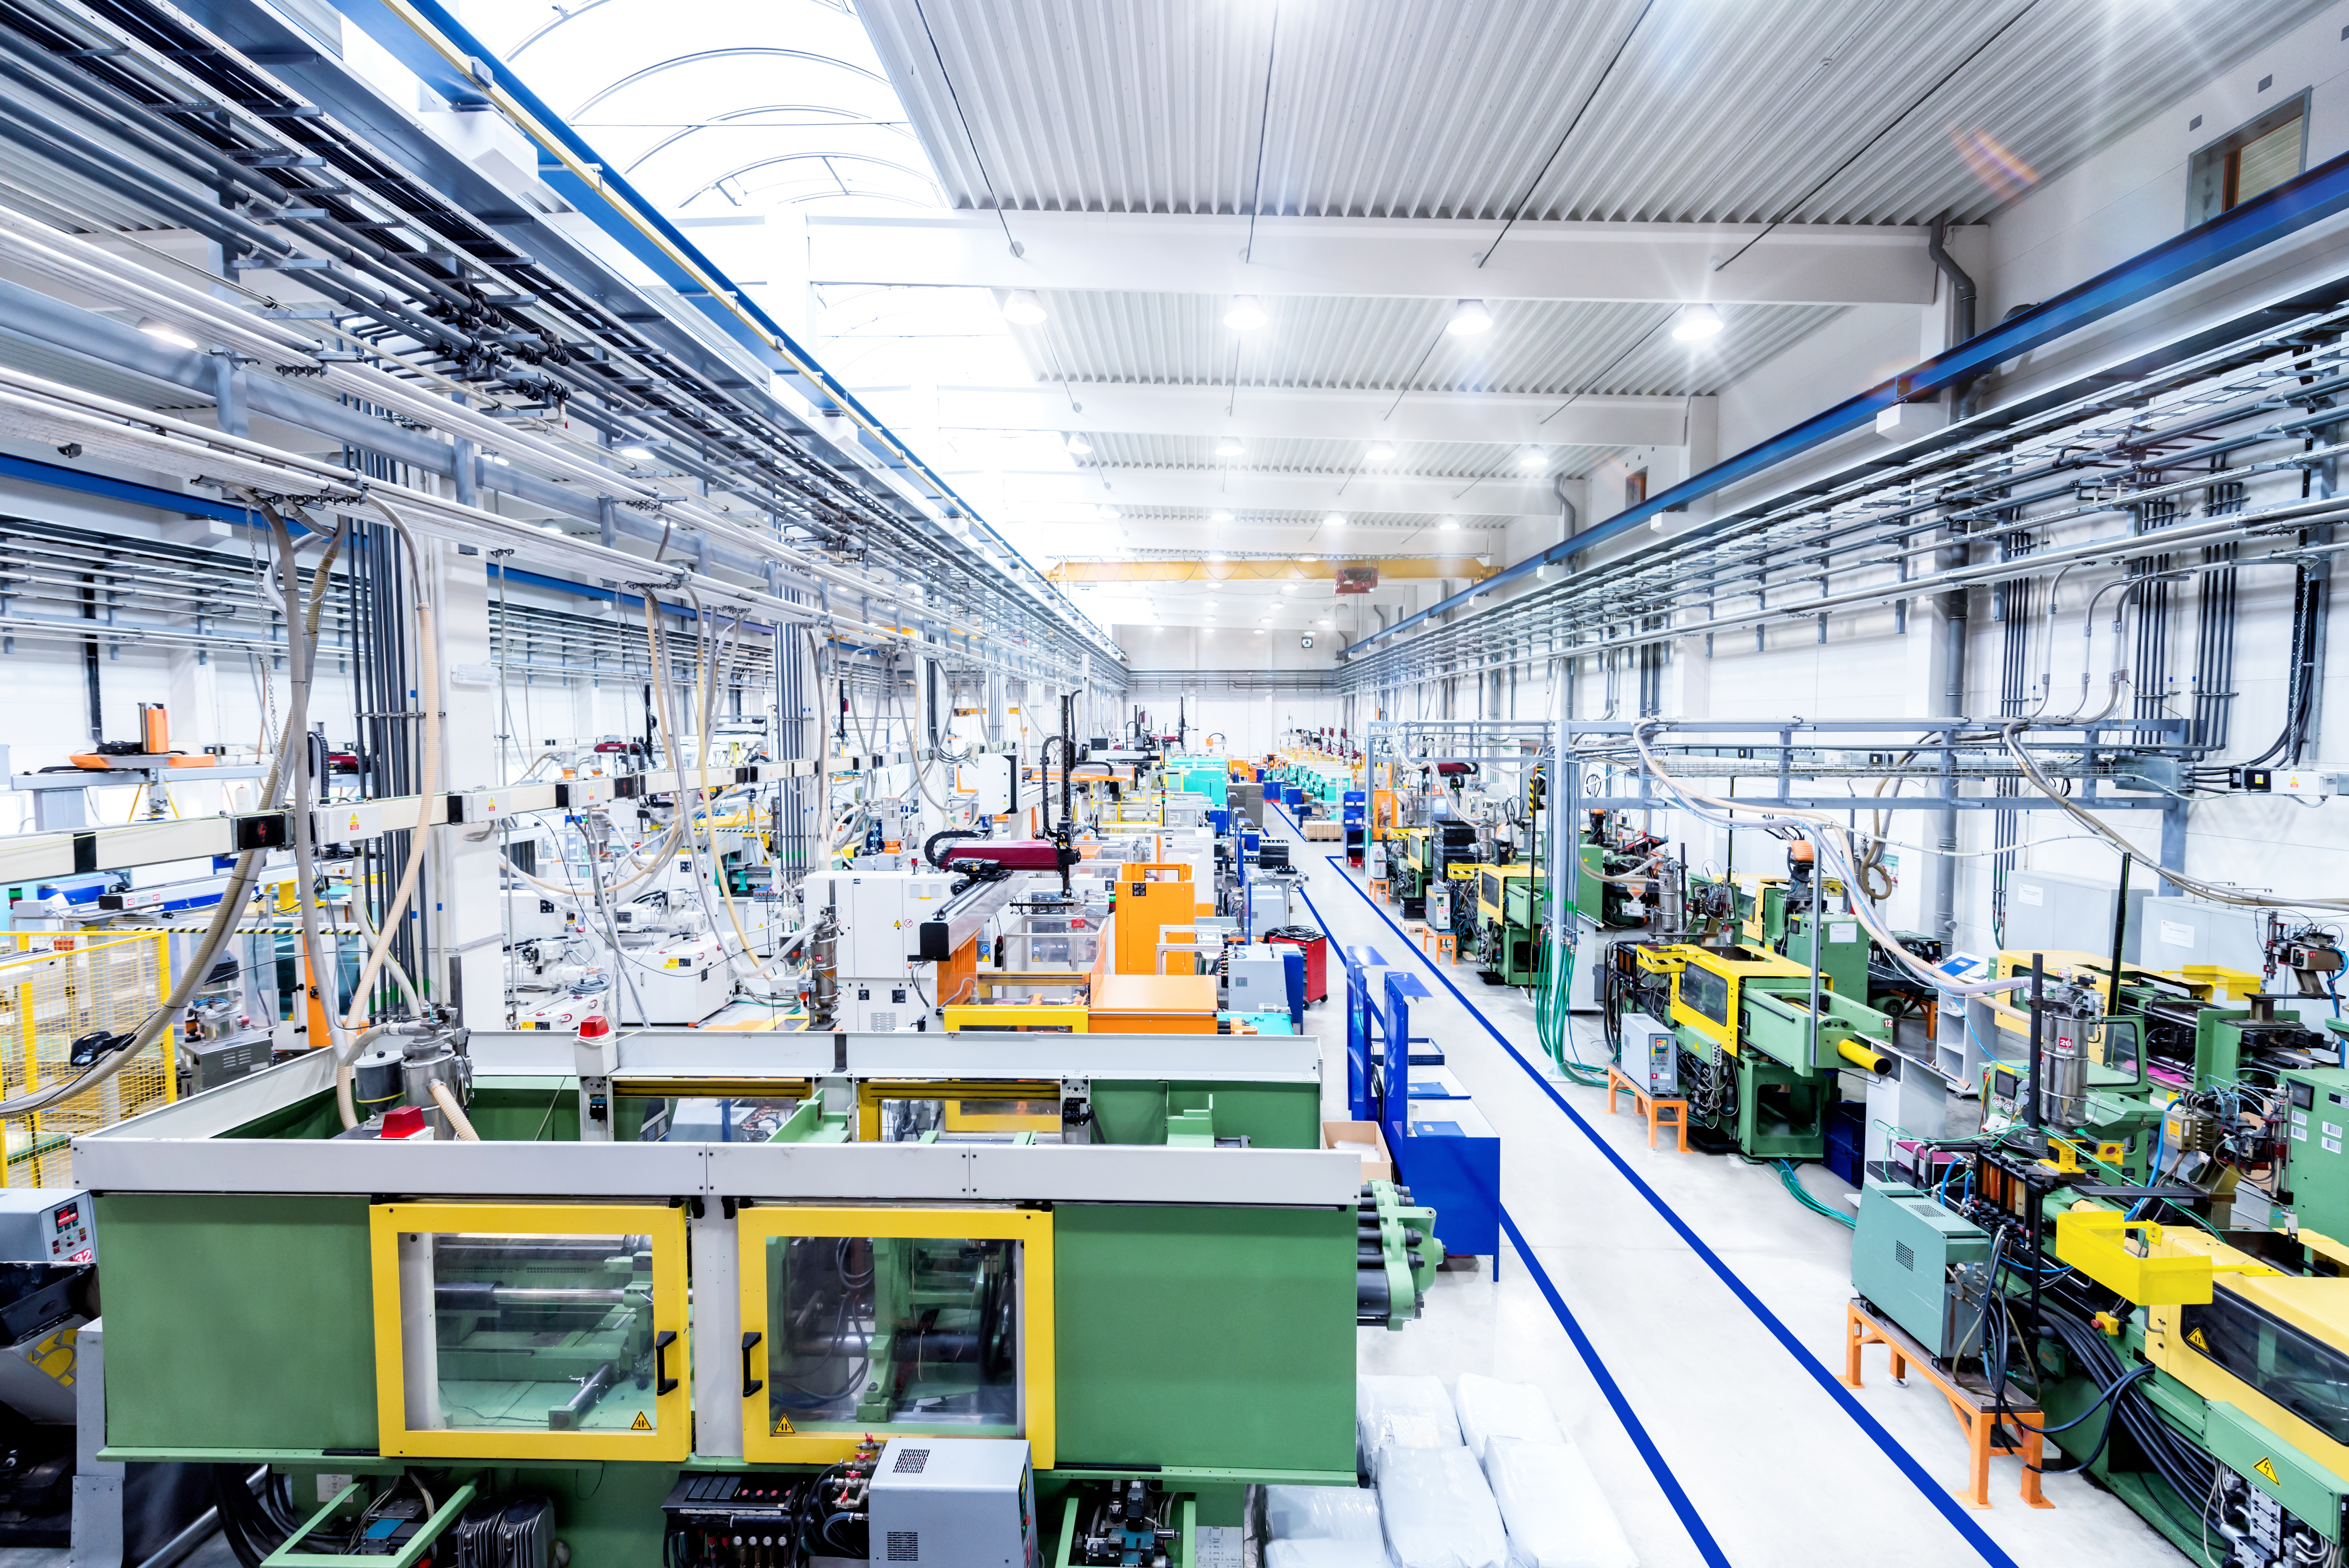 Horizontal color image of futuristic factory. Industrial aisle surrounded by modern machines which having busy robotic arms with molding shapes and producing plastic pieces for variety of industry. Labor intensive production line with manufacturing equipment.